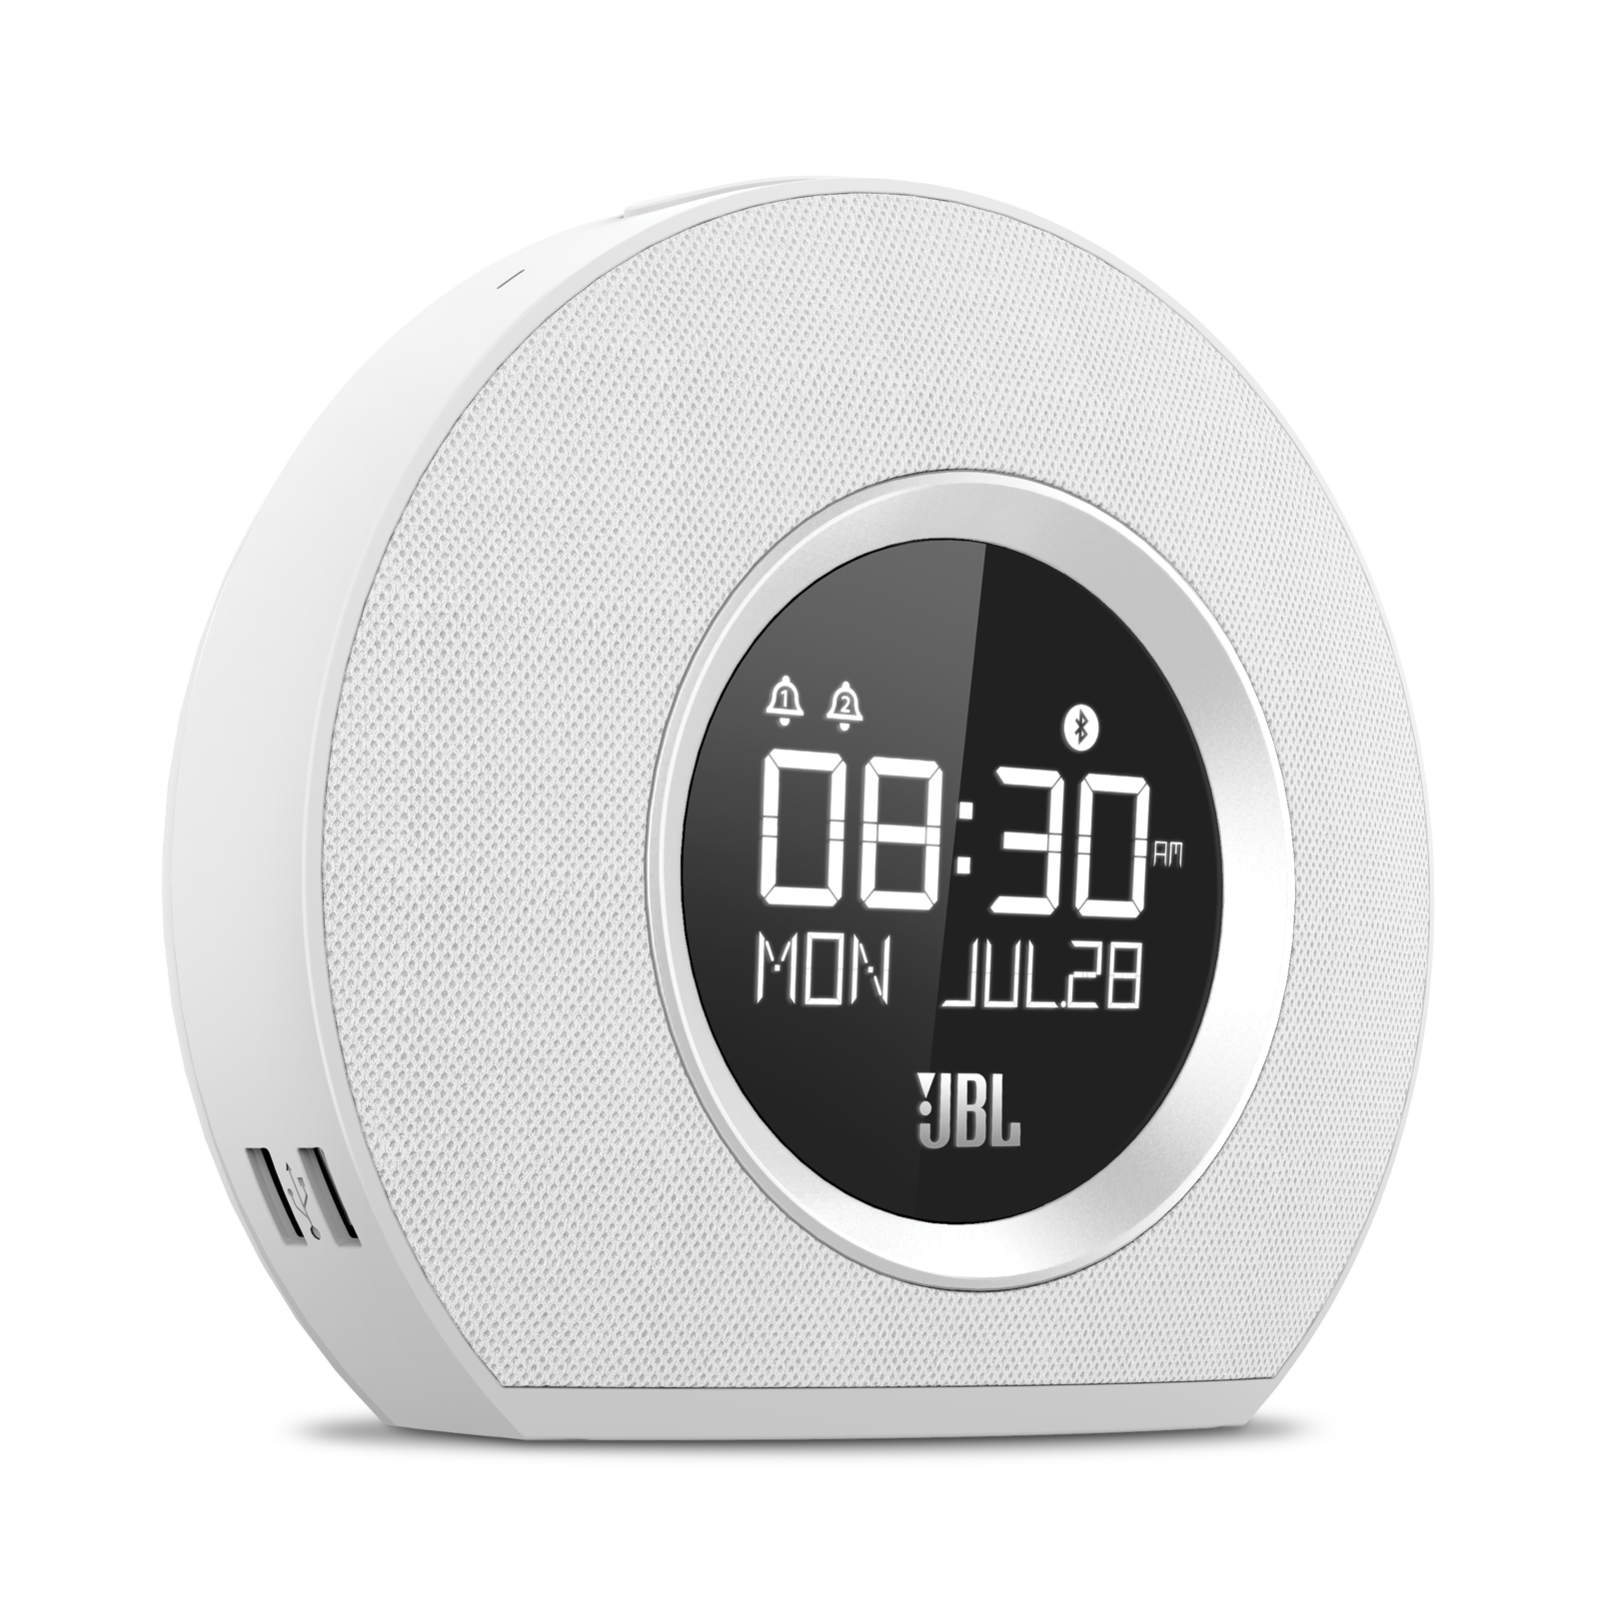 JBL Horizon - White - Bluetooth clock radio with USB charging and ambient light - Hero